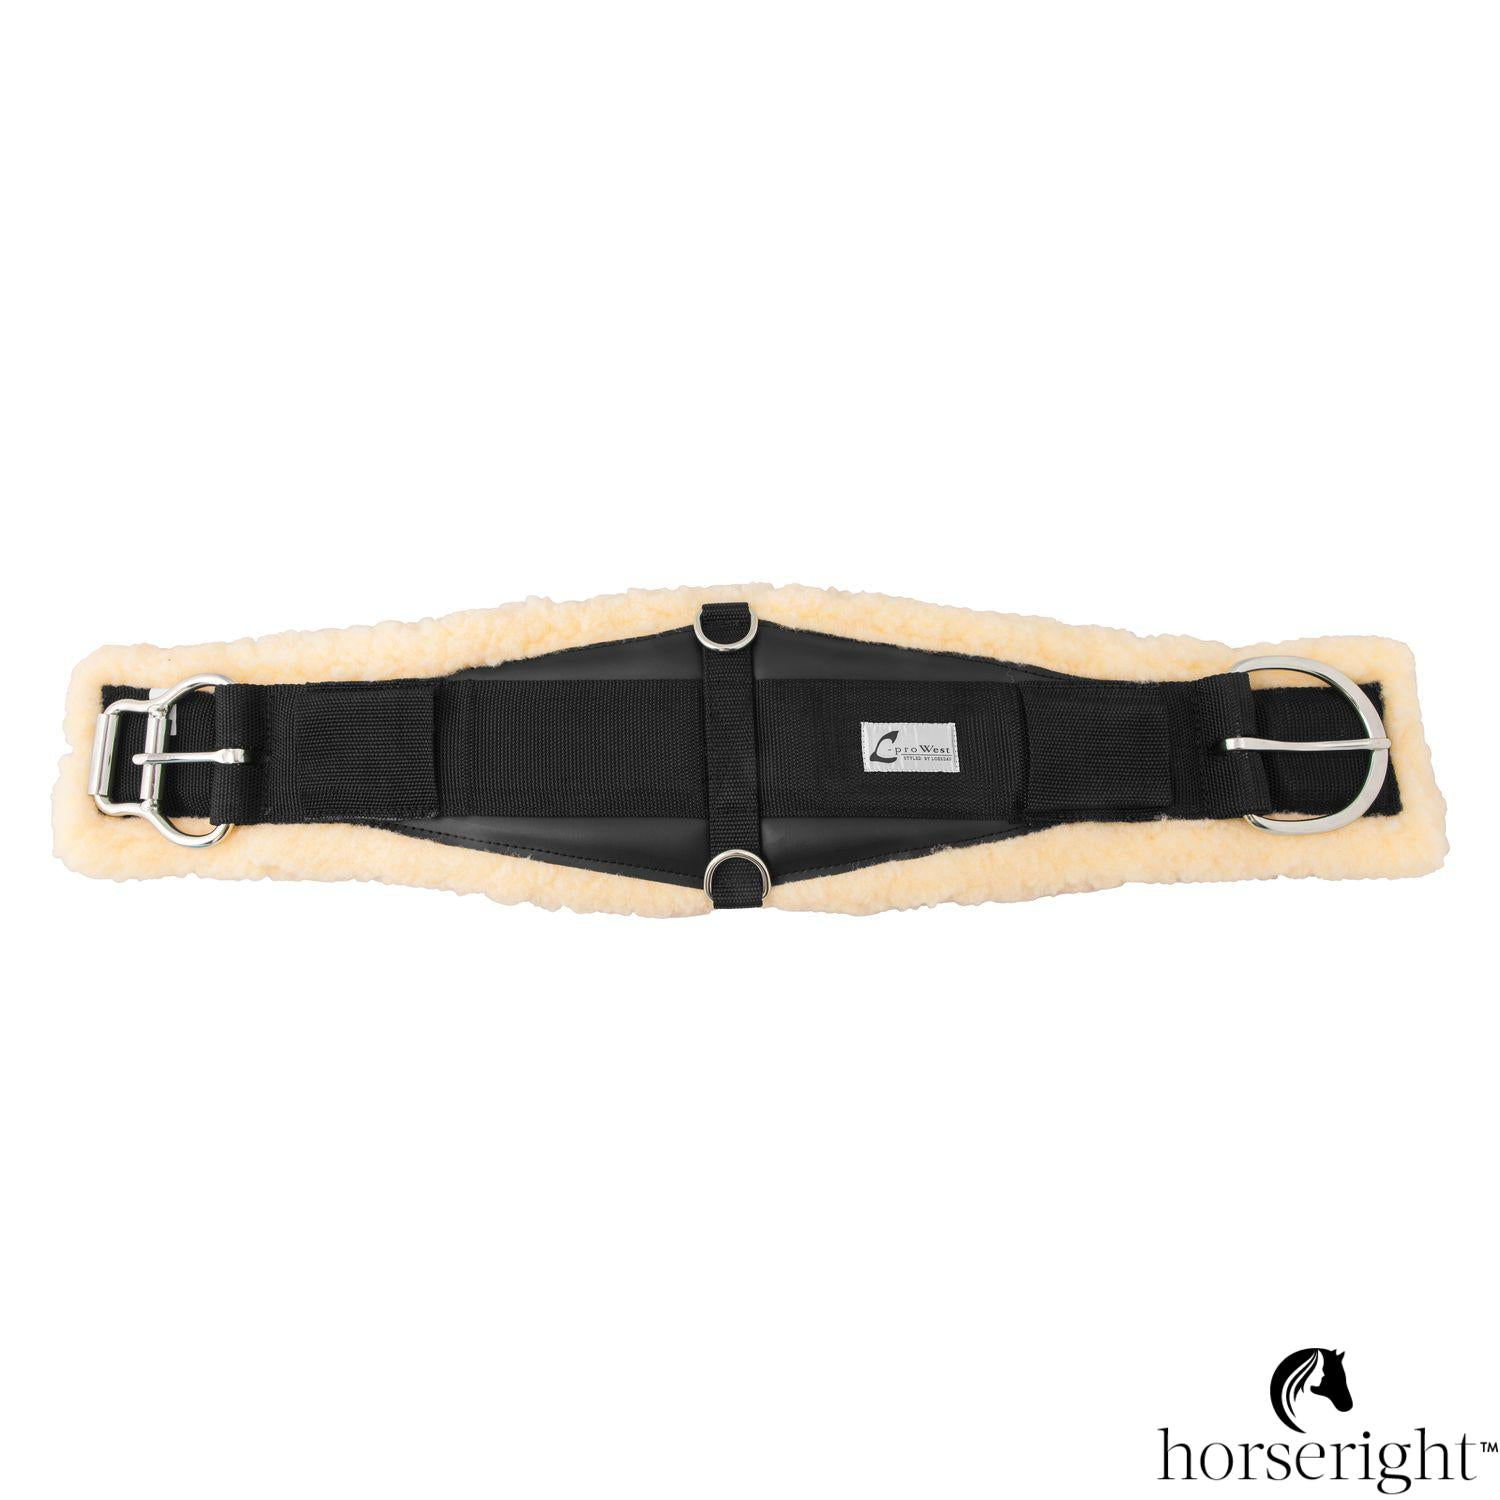 L-Pro West Western Saddle Girth